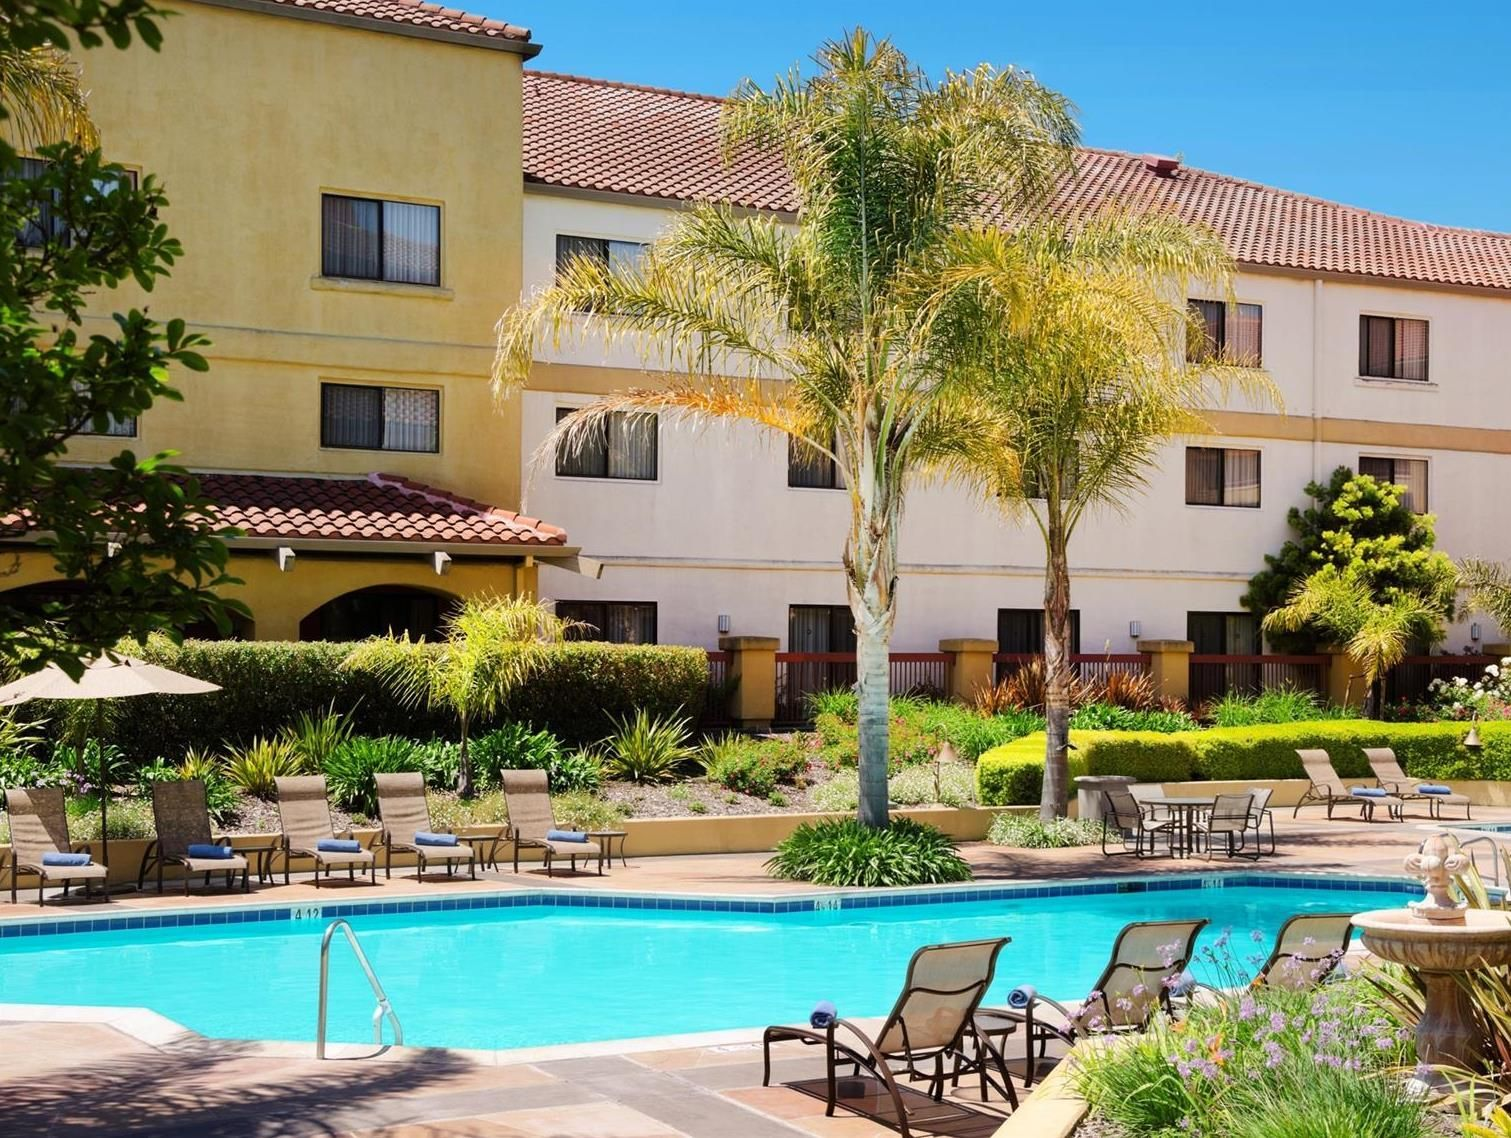 Located In Rohnert Park Doubletree Sonoma Wine Country Hotel Is A Perfect Starting Point From Which To Explore Ca Featuring Complete List